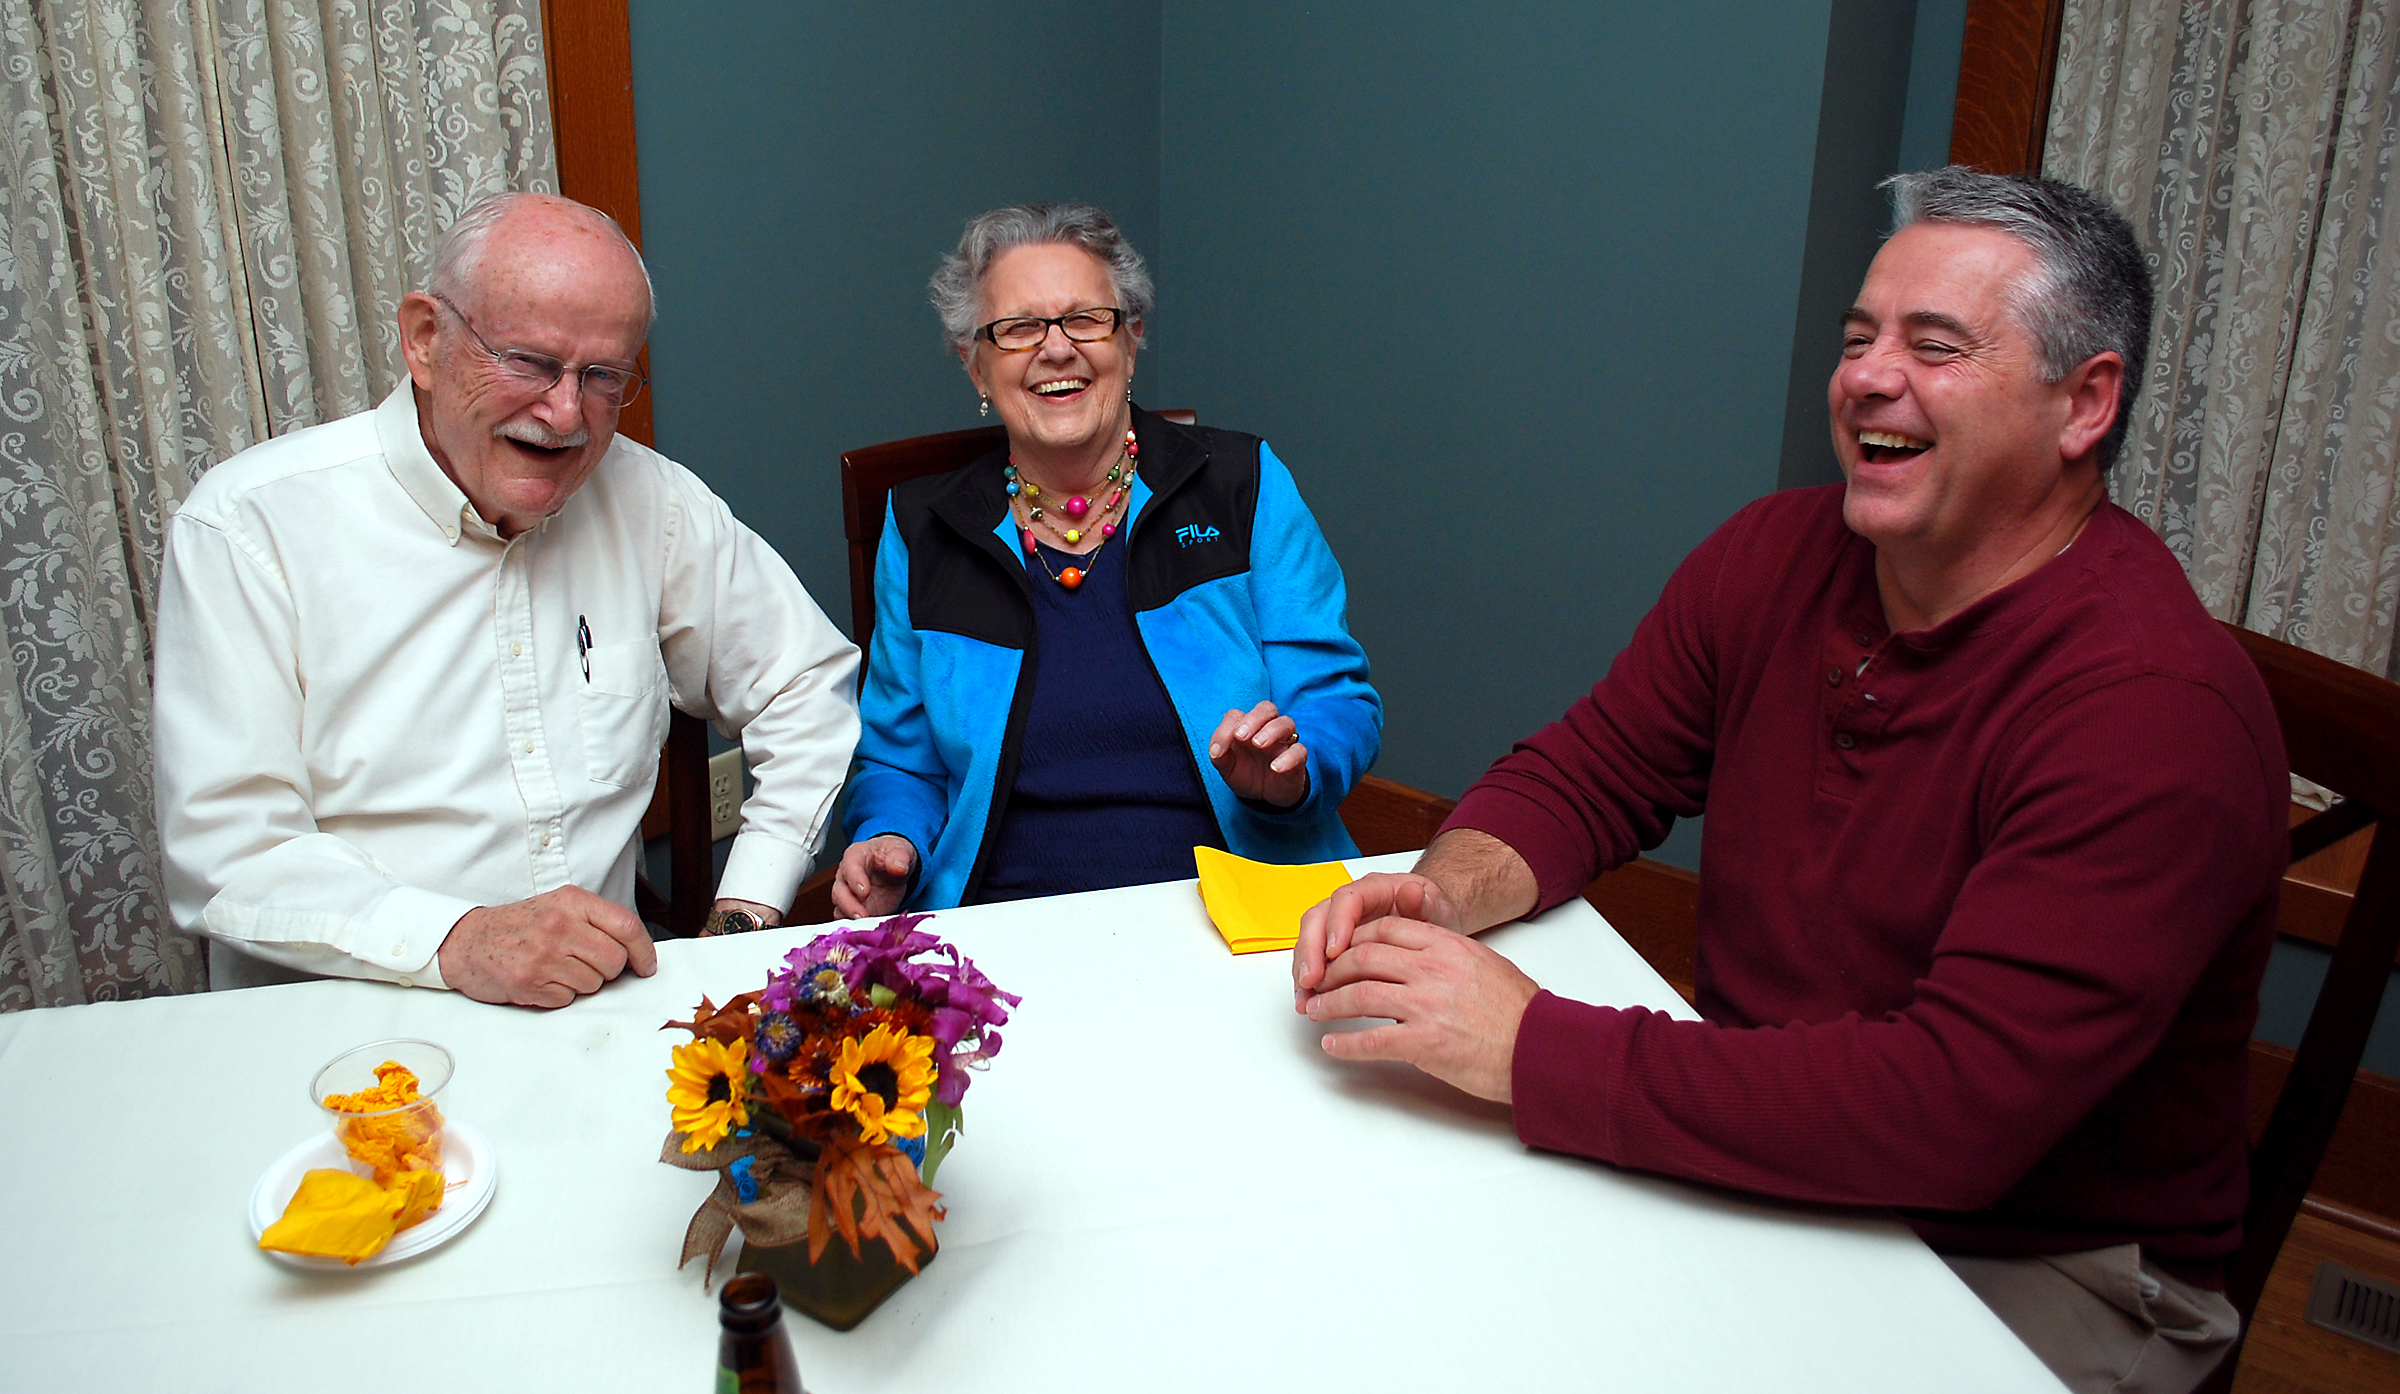 From left: Jim Harvey, Betty Otis and Pat Callahan share a laugh at The Fern, which Callahan owns.